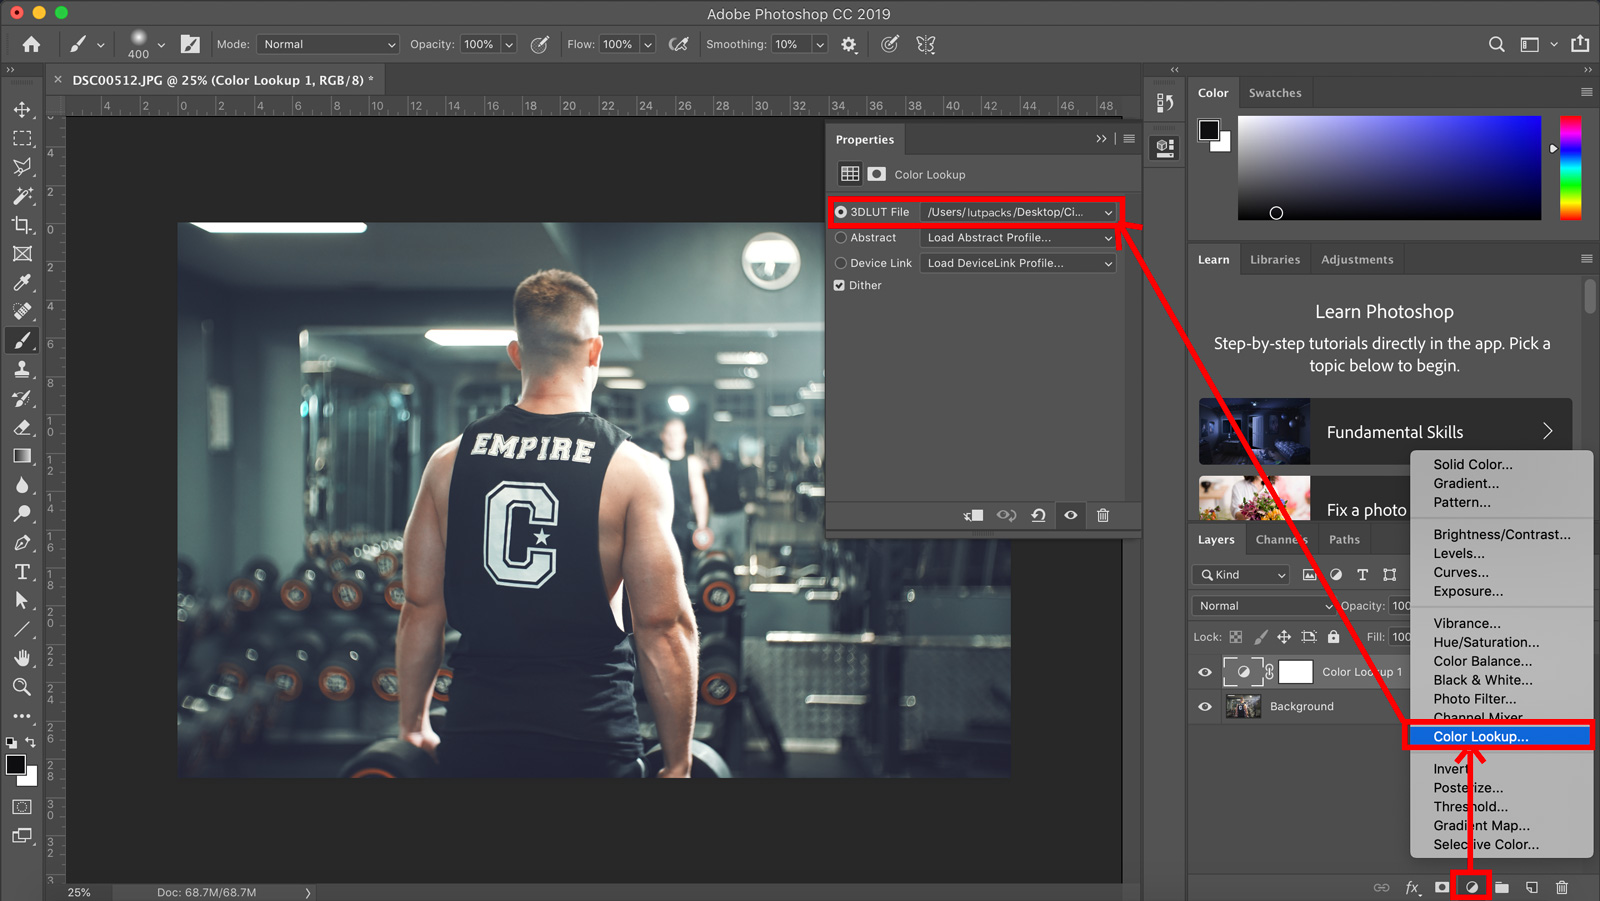 How to use lut preset packs in photoshop